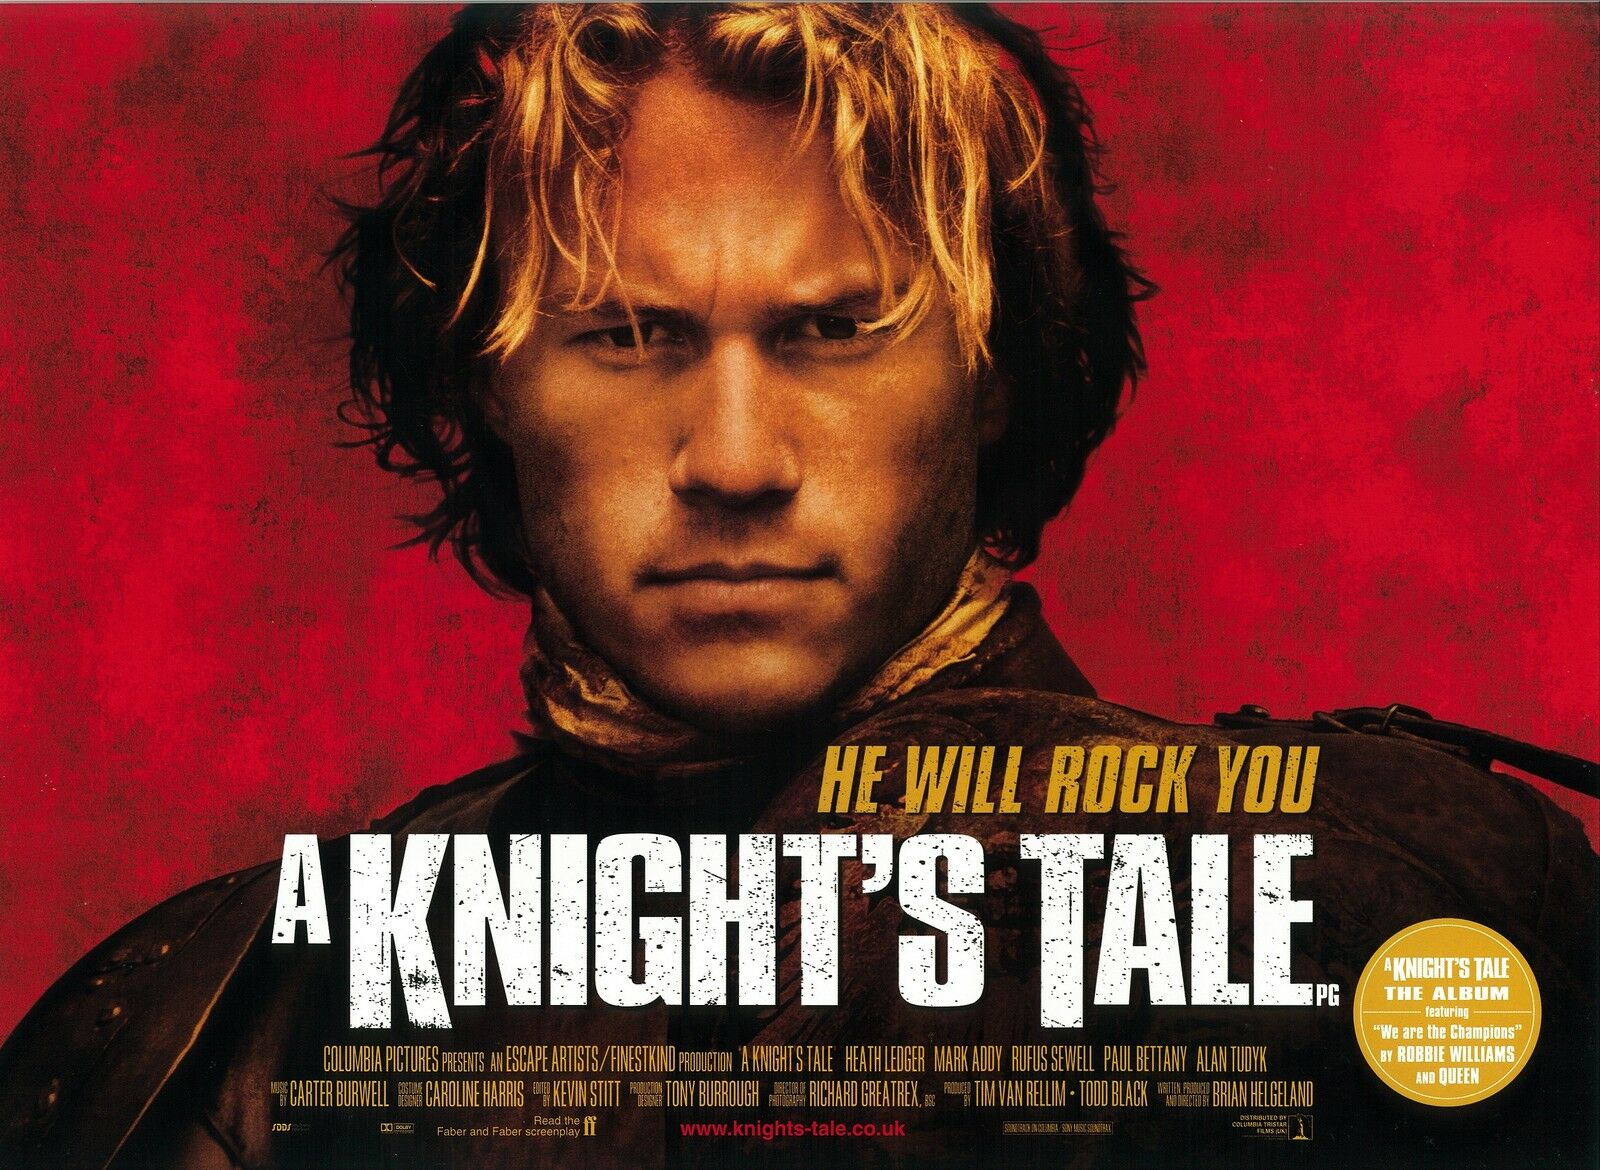 A Knight's Tale Movie Poster - Heath Ledger Poster - 12 X 16 Inches